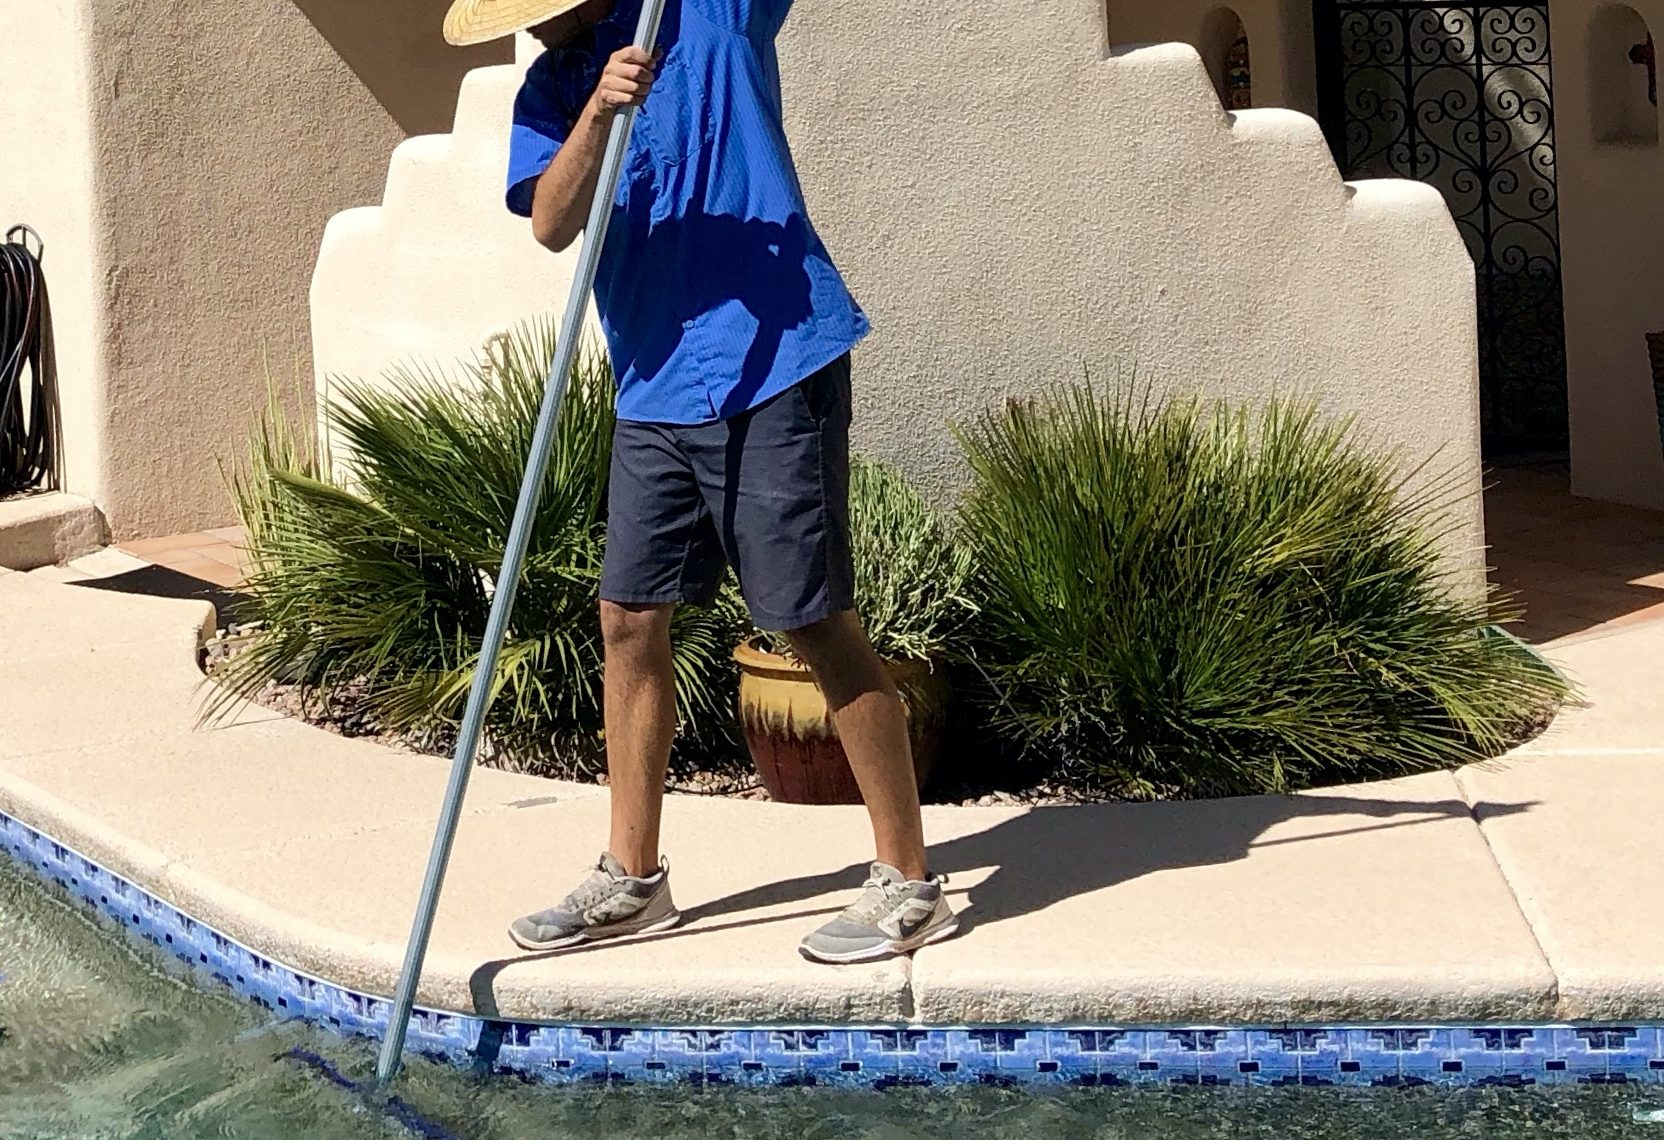 Man cleaning a pool in Tucson